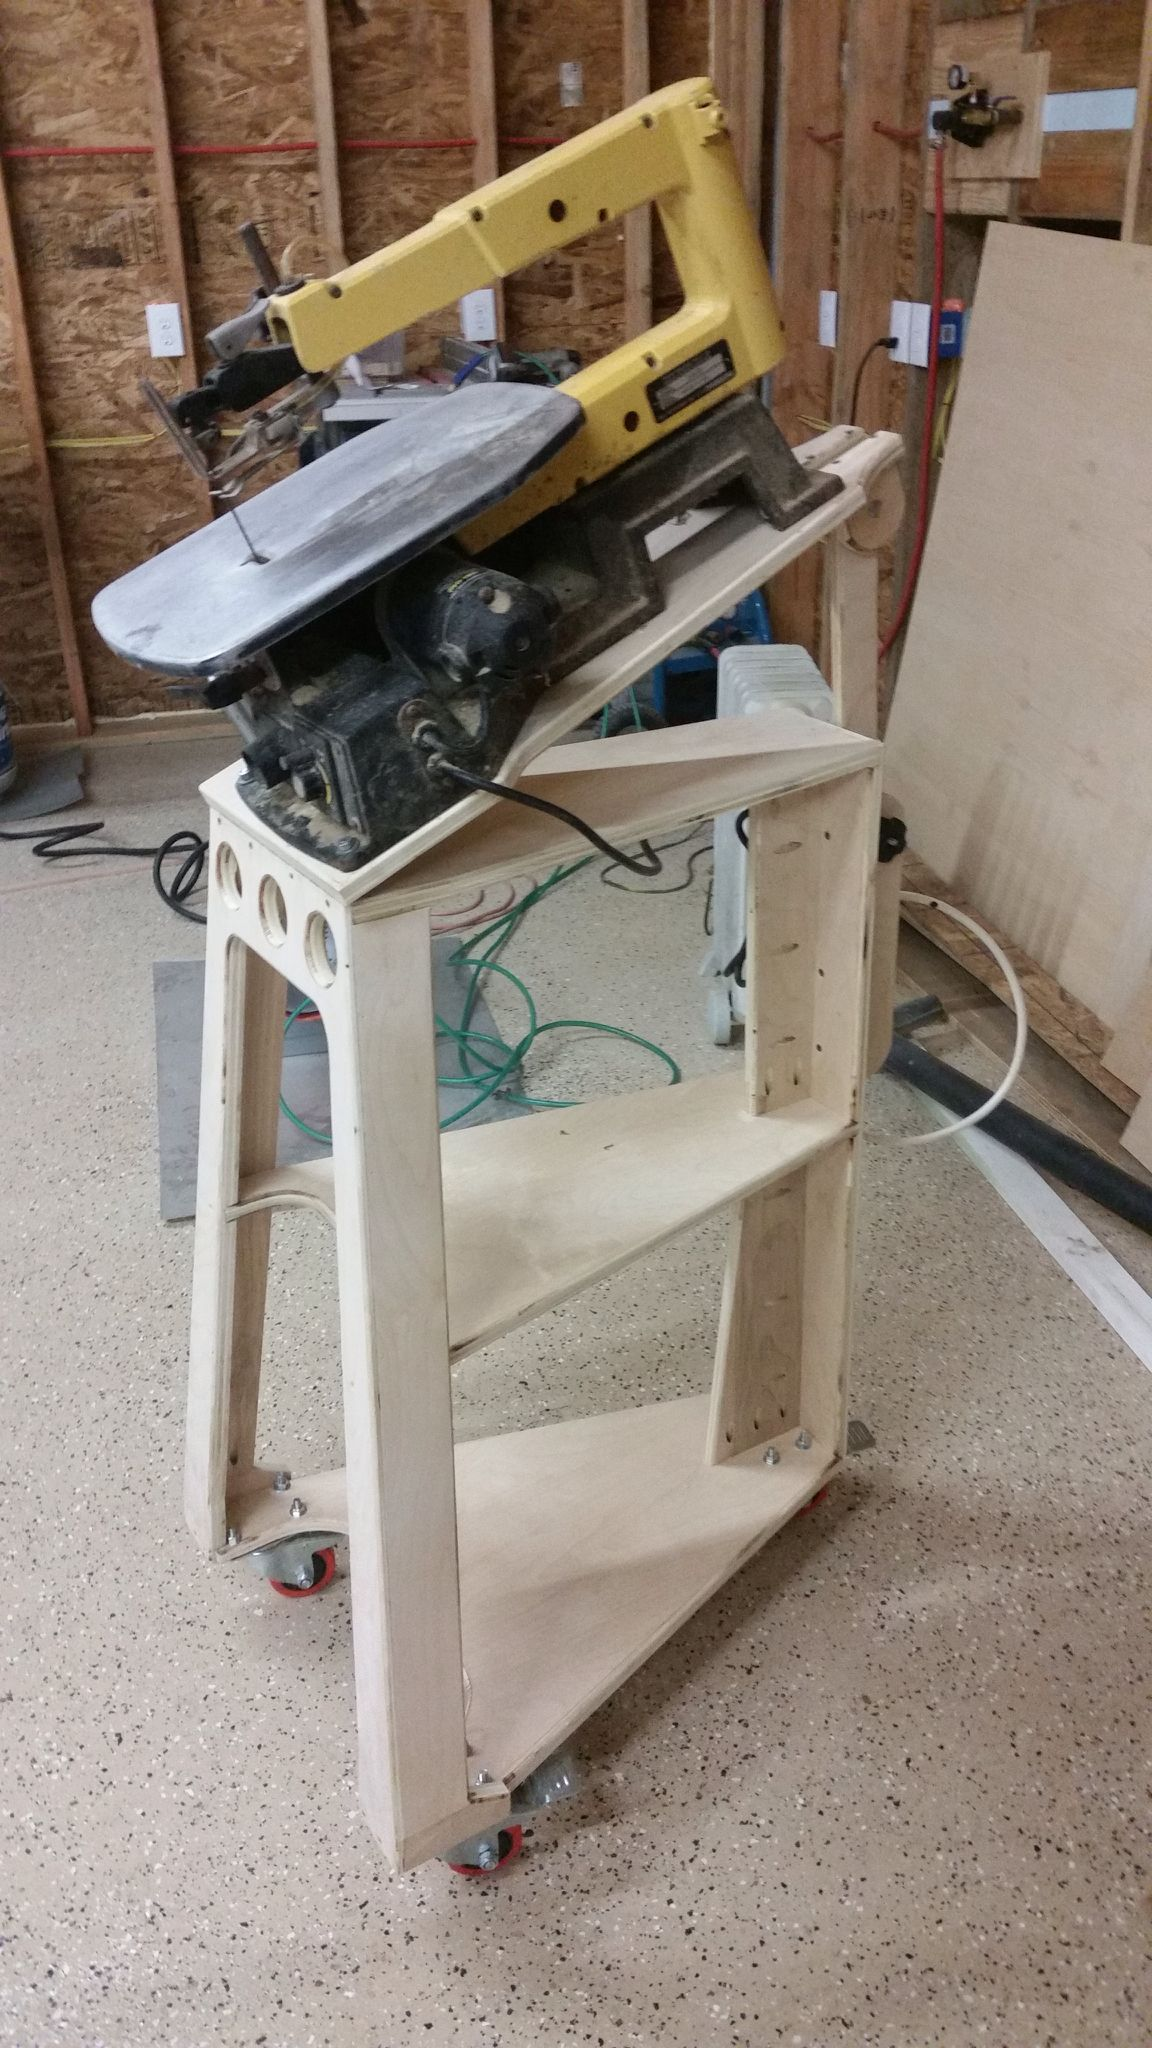 Http Teds Woodworking Digimkts Com I Can Totally Do This Myself Diy Woodworking Shop Plans Woodworking Shop Woodworking Shop Projects